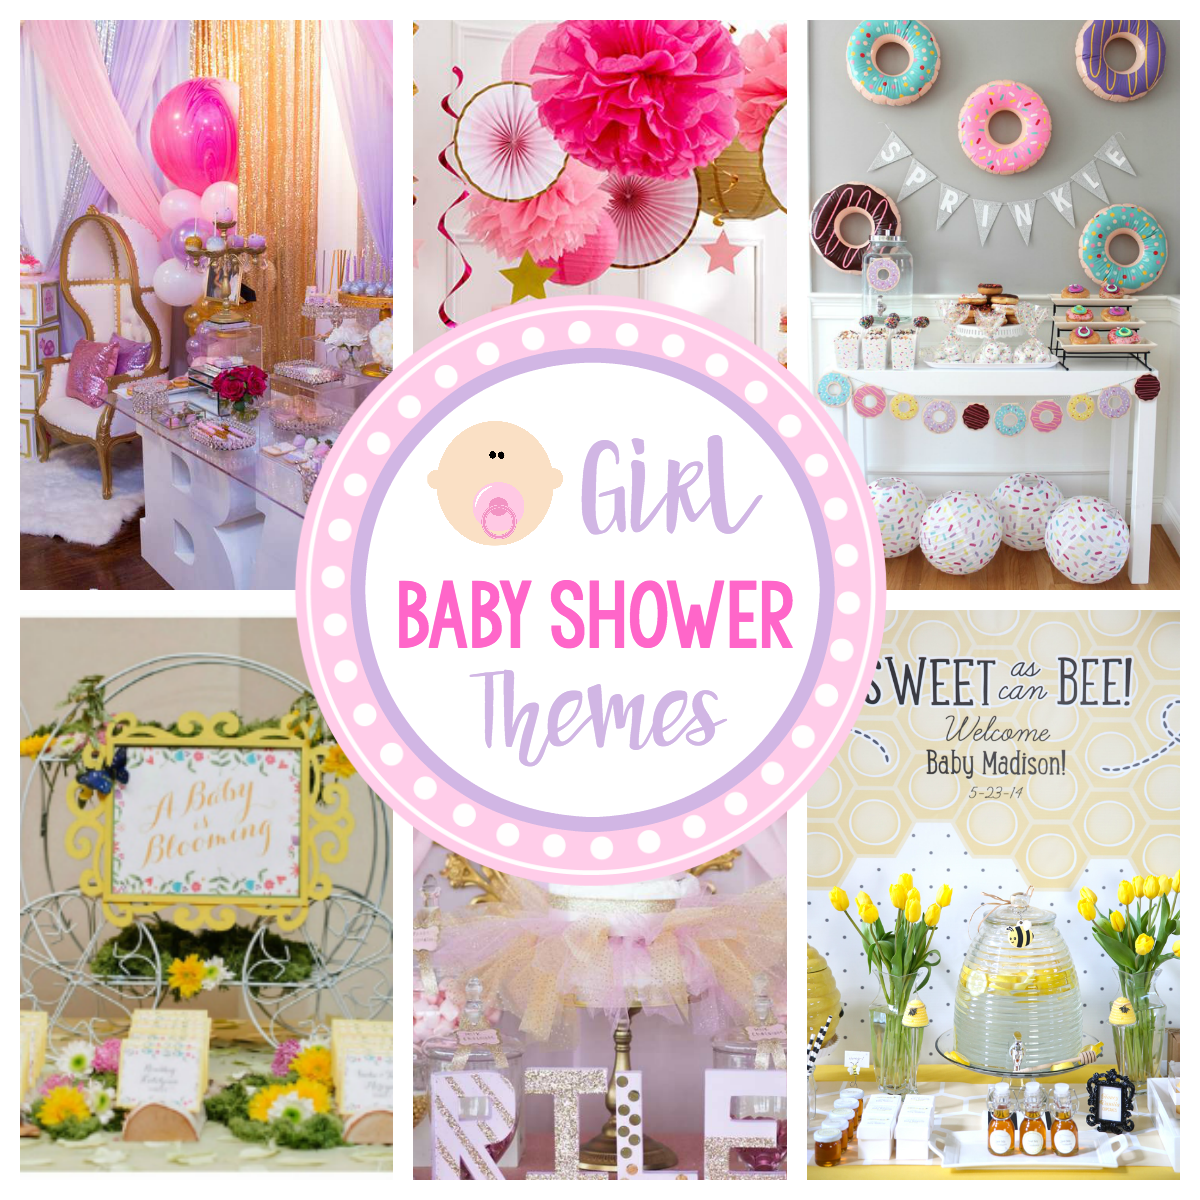 Cute girl baby shower themes ideas